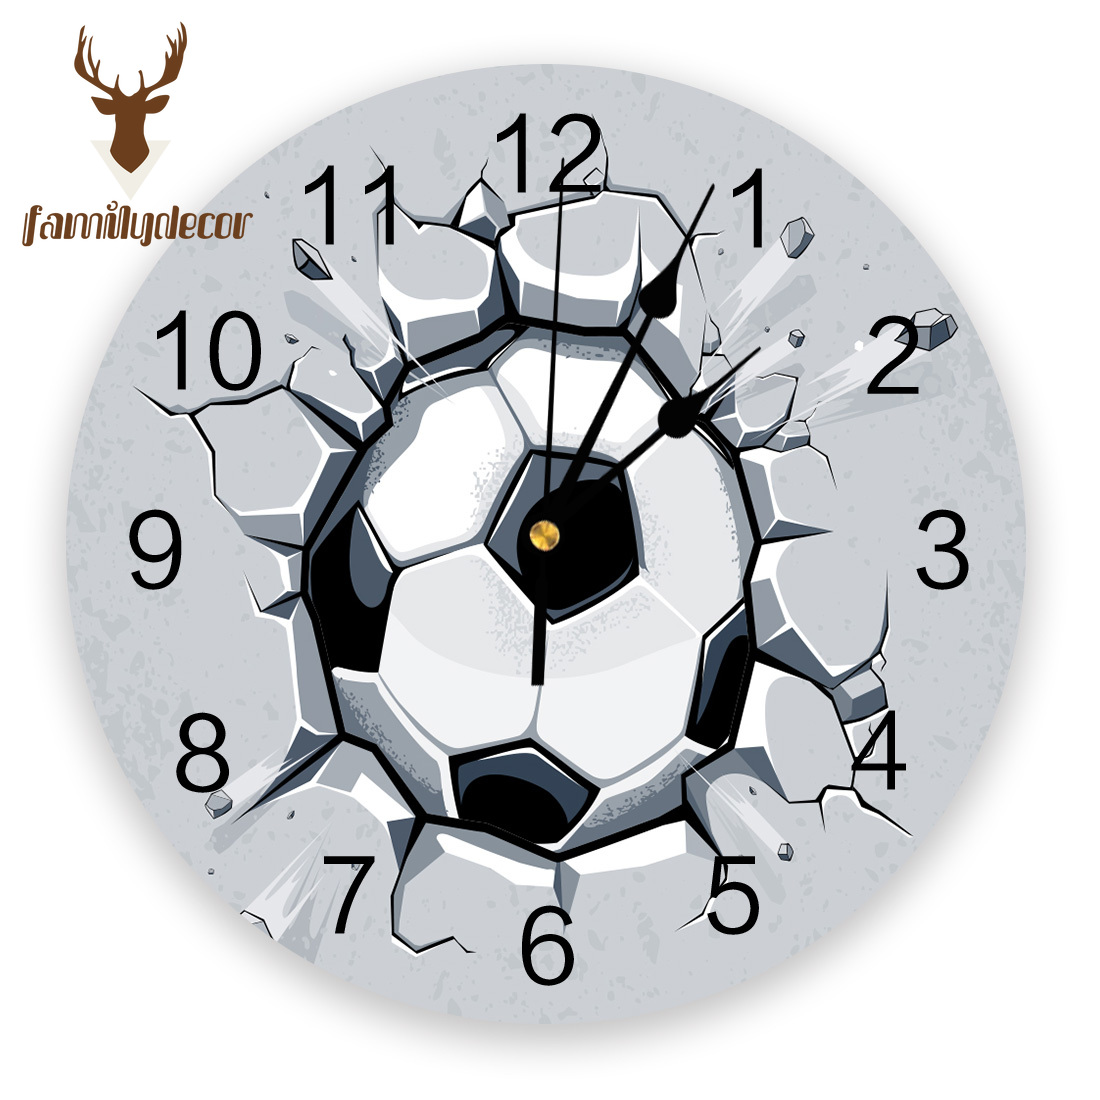 3D Football Crackle Soccer Game Power PVC Wall Clock Modern Design Home Decor Bedroom Silent Oclock Watch Wall For Living Room